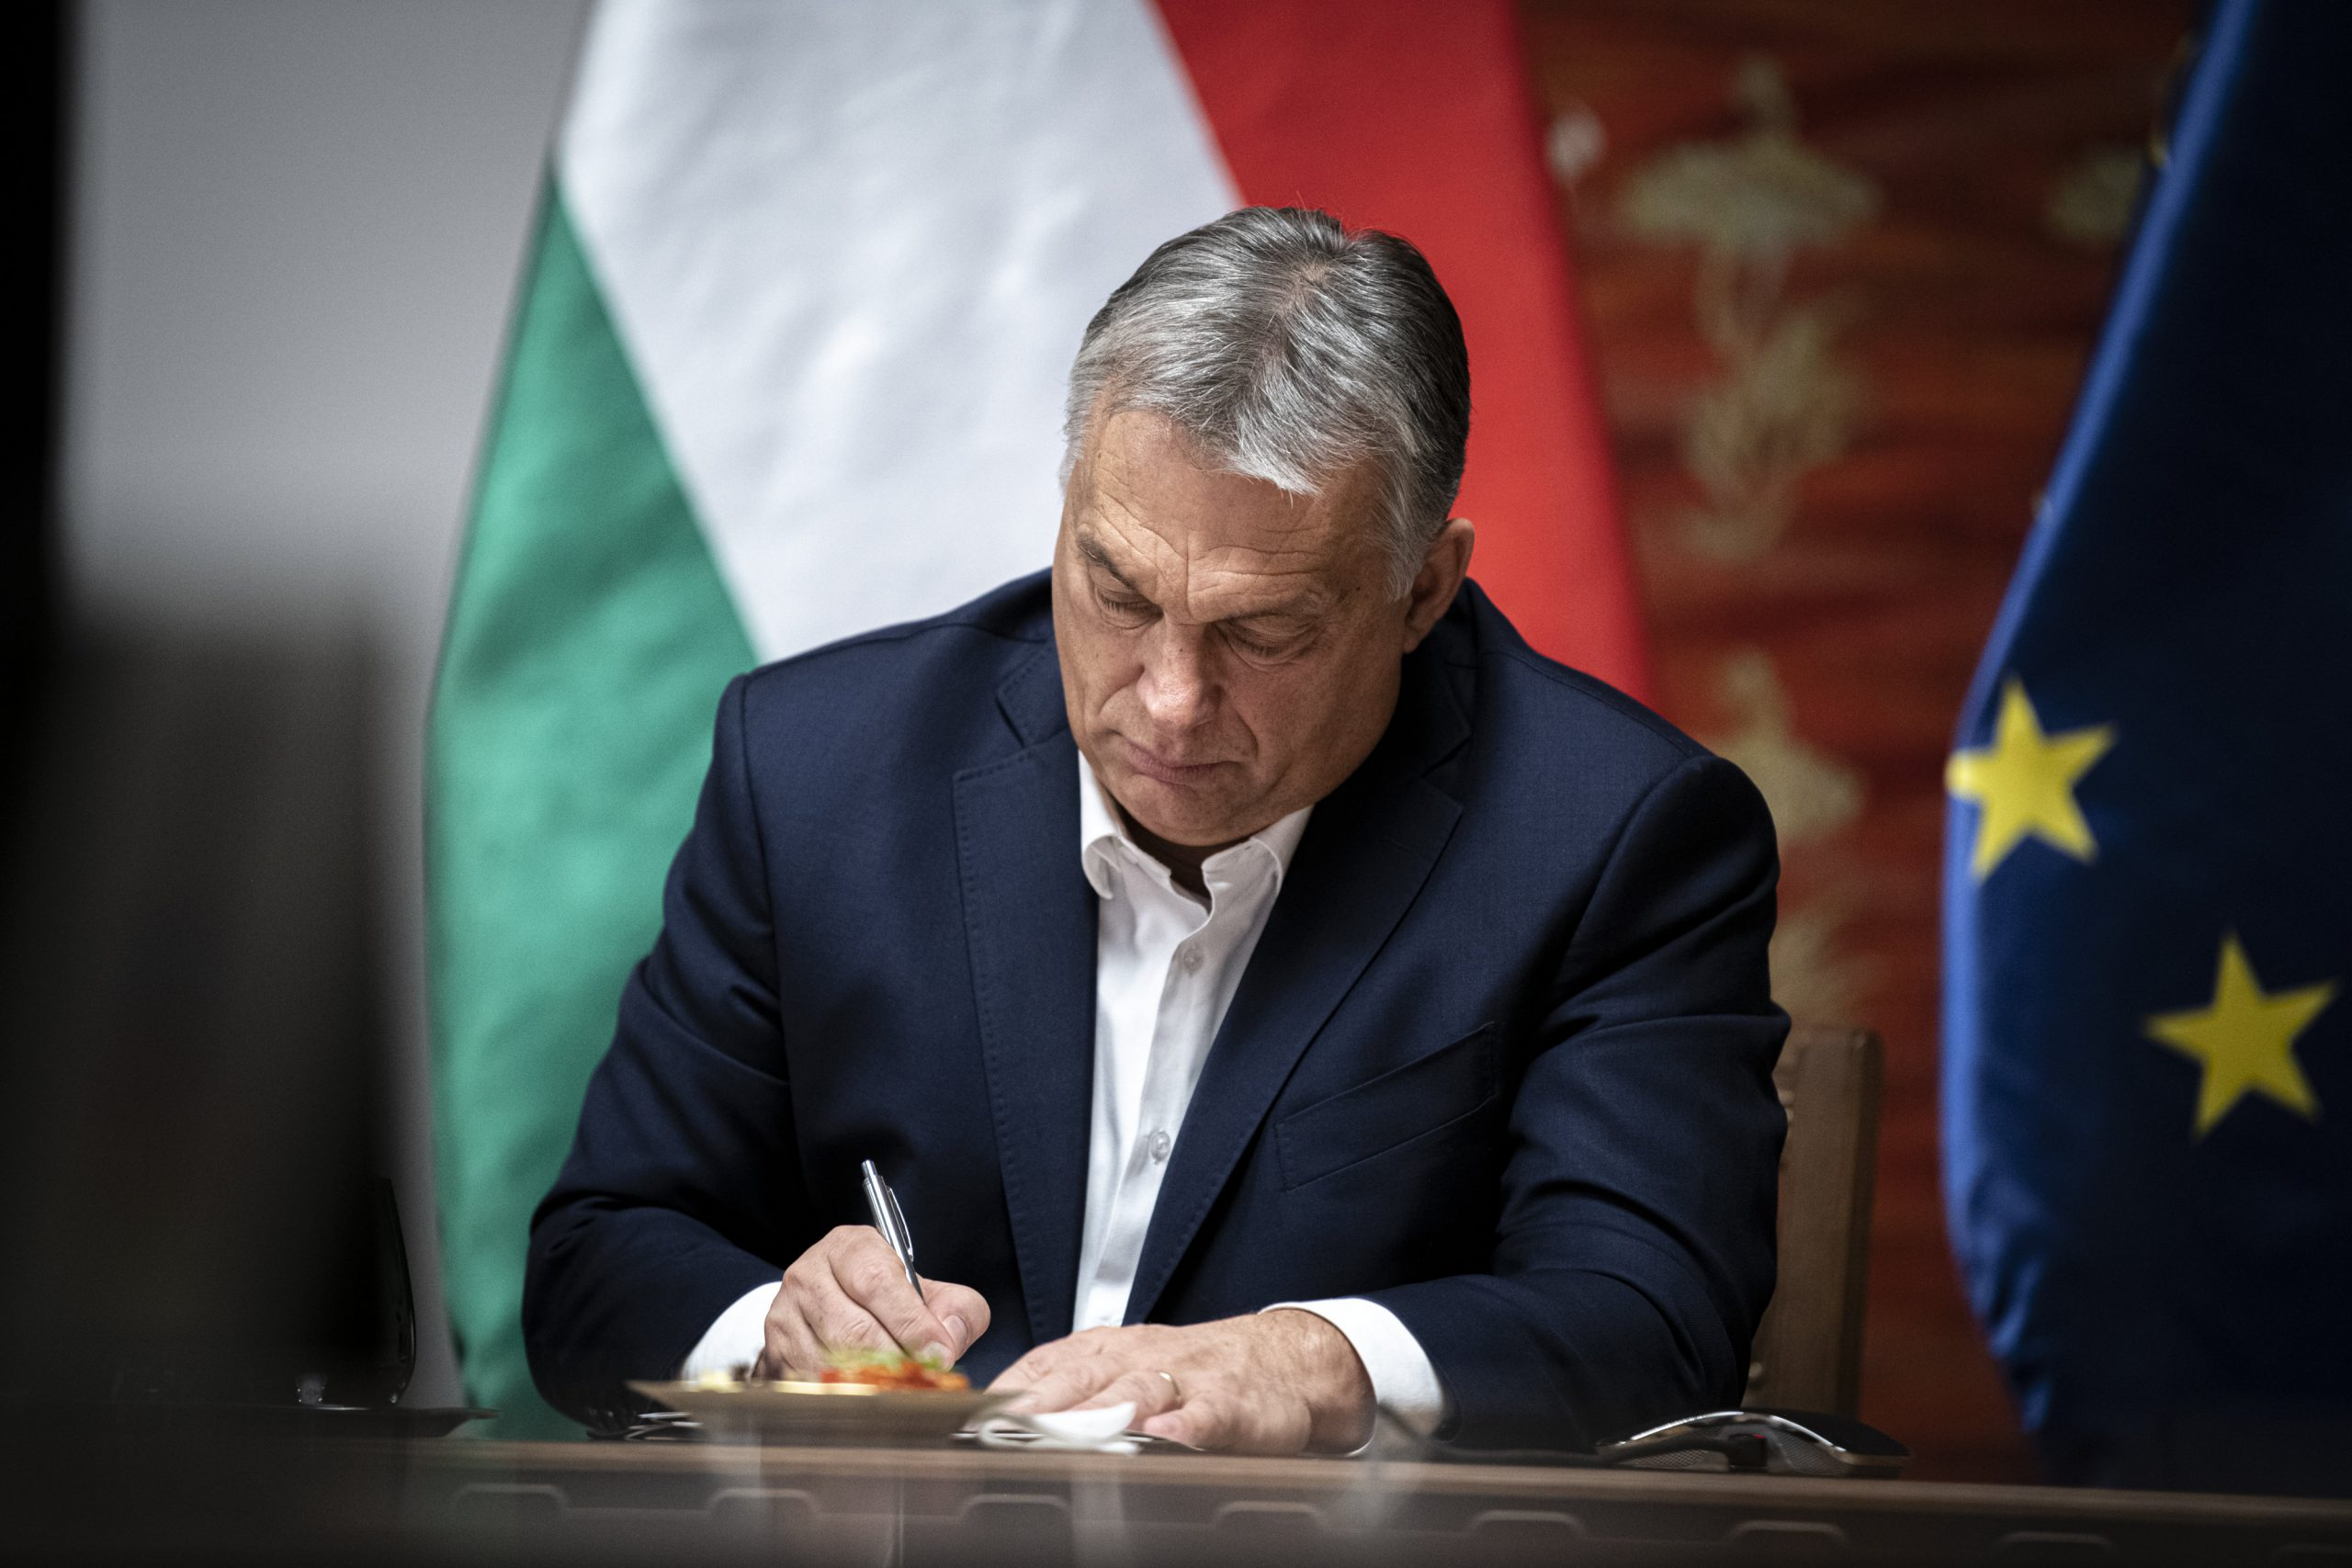 Holocaust Remembrance Day - Orbán: Lessons Learnt from 'Dark Chapter'